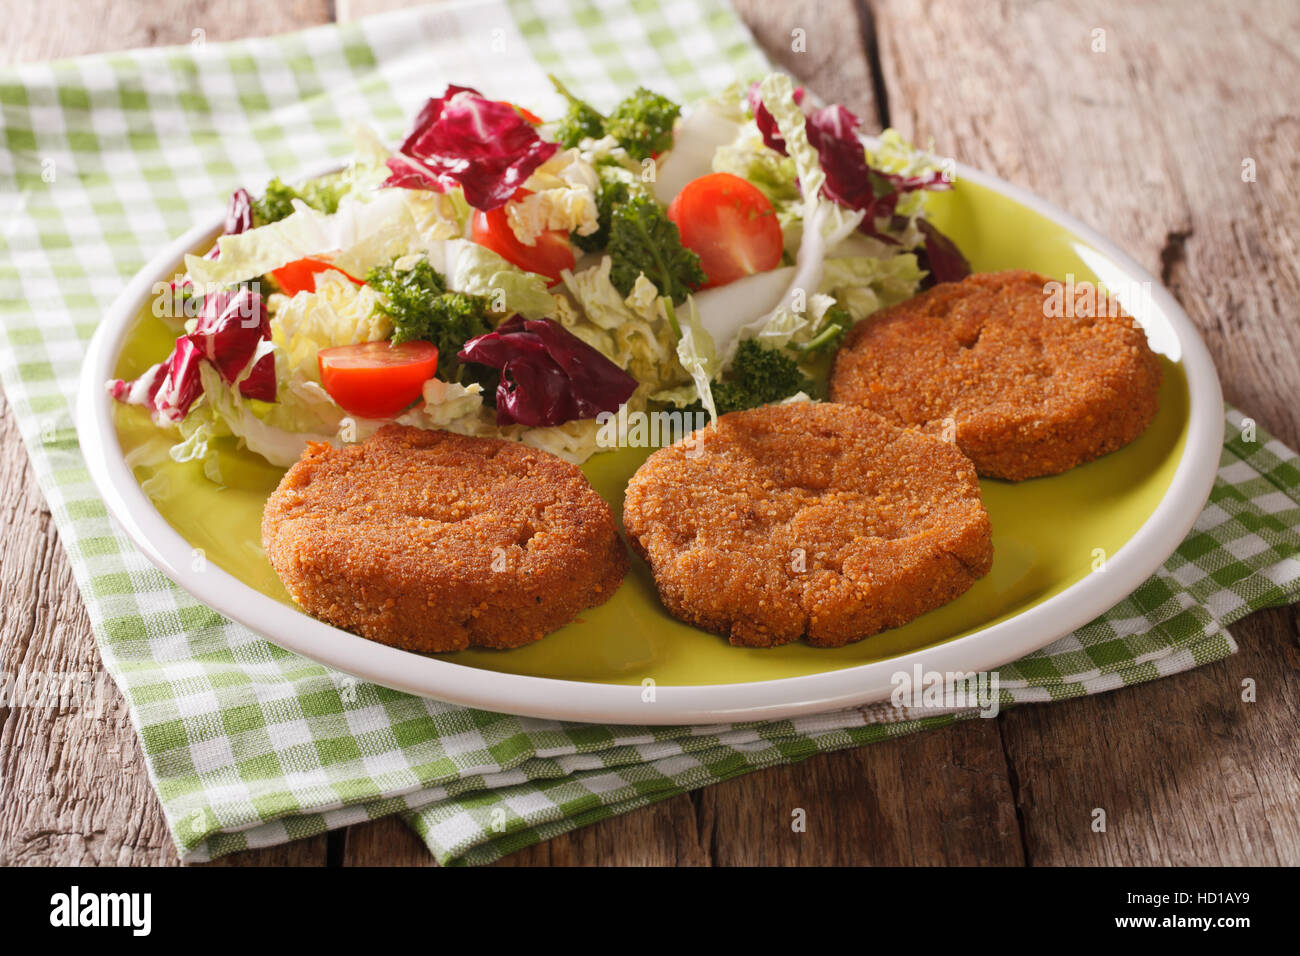 Dietary breakfast: carrot cutlets and salad of chicory, cabbage and tomatoes close-up on a plate. horizontal - Stock Image